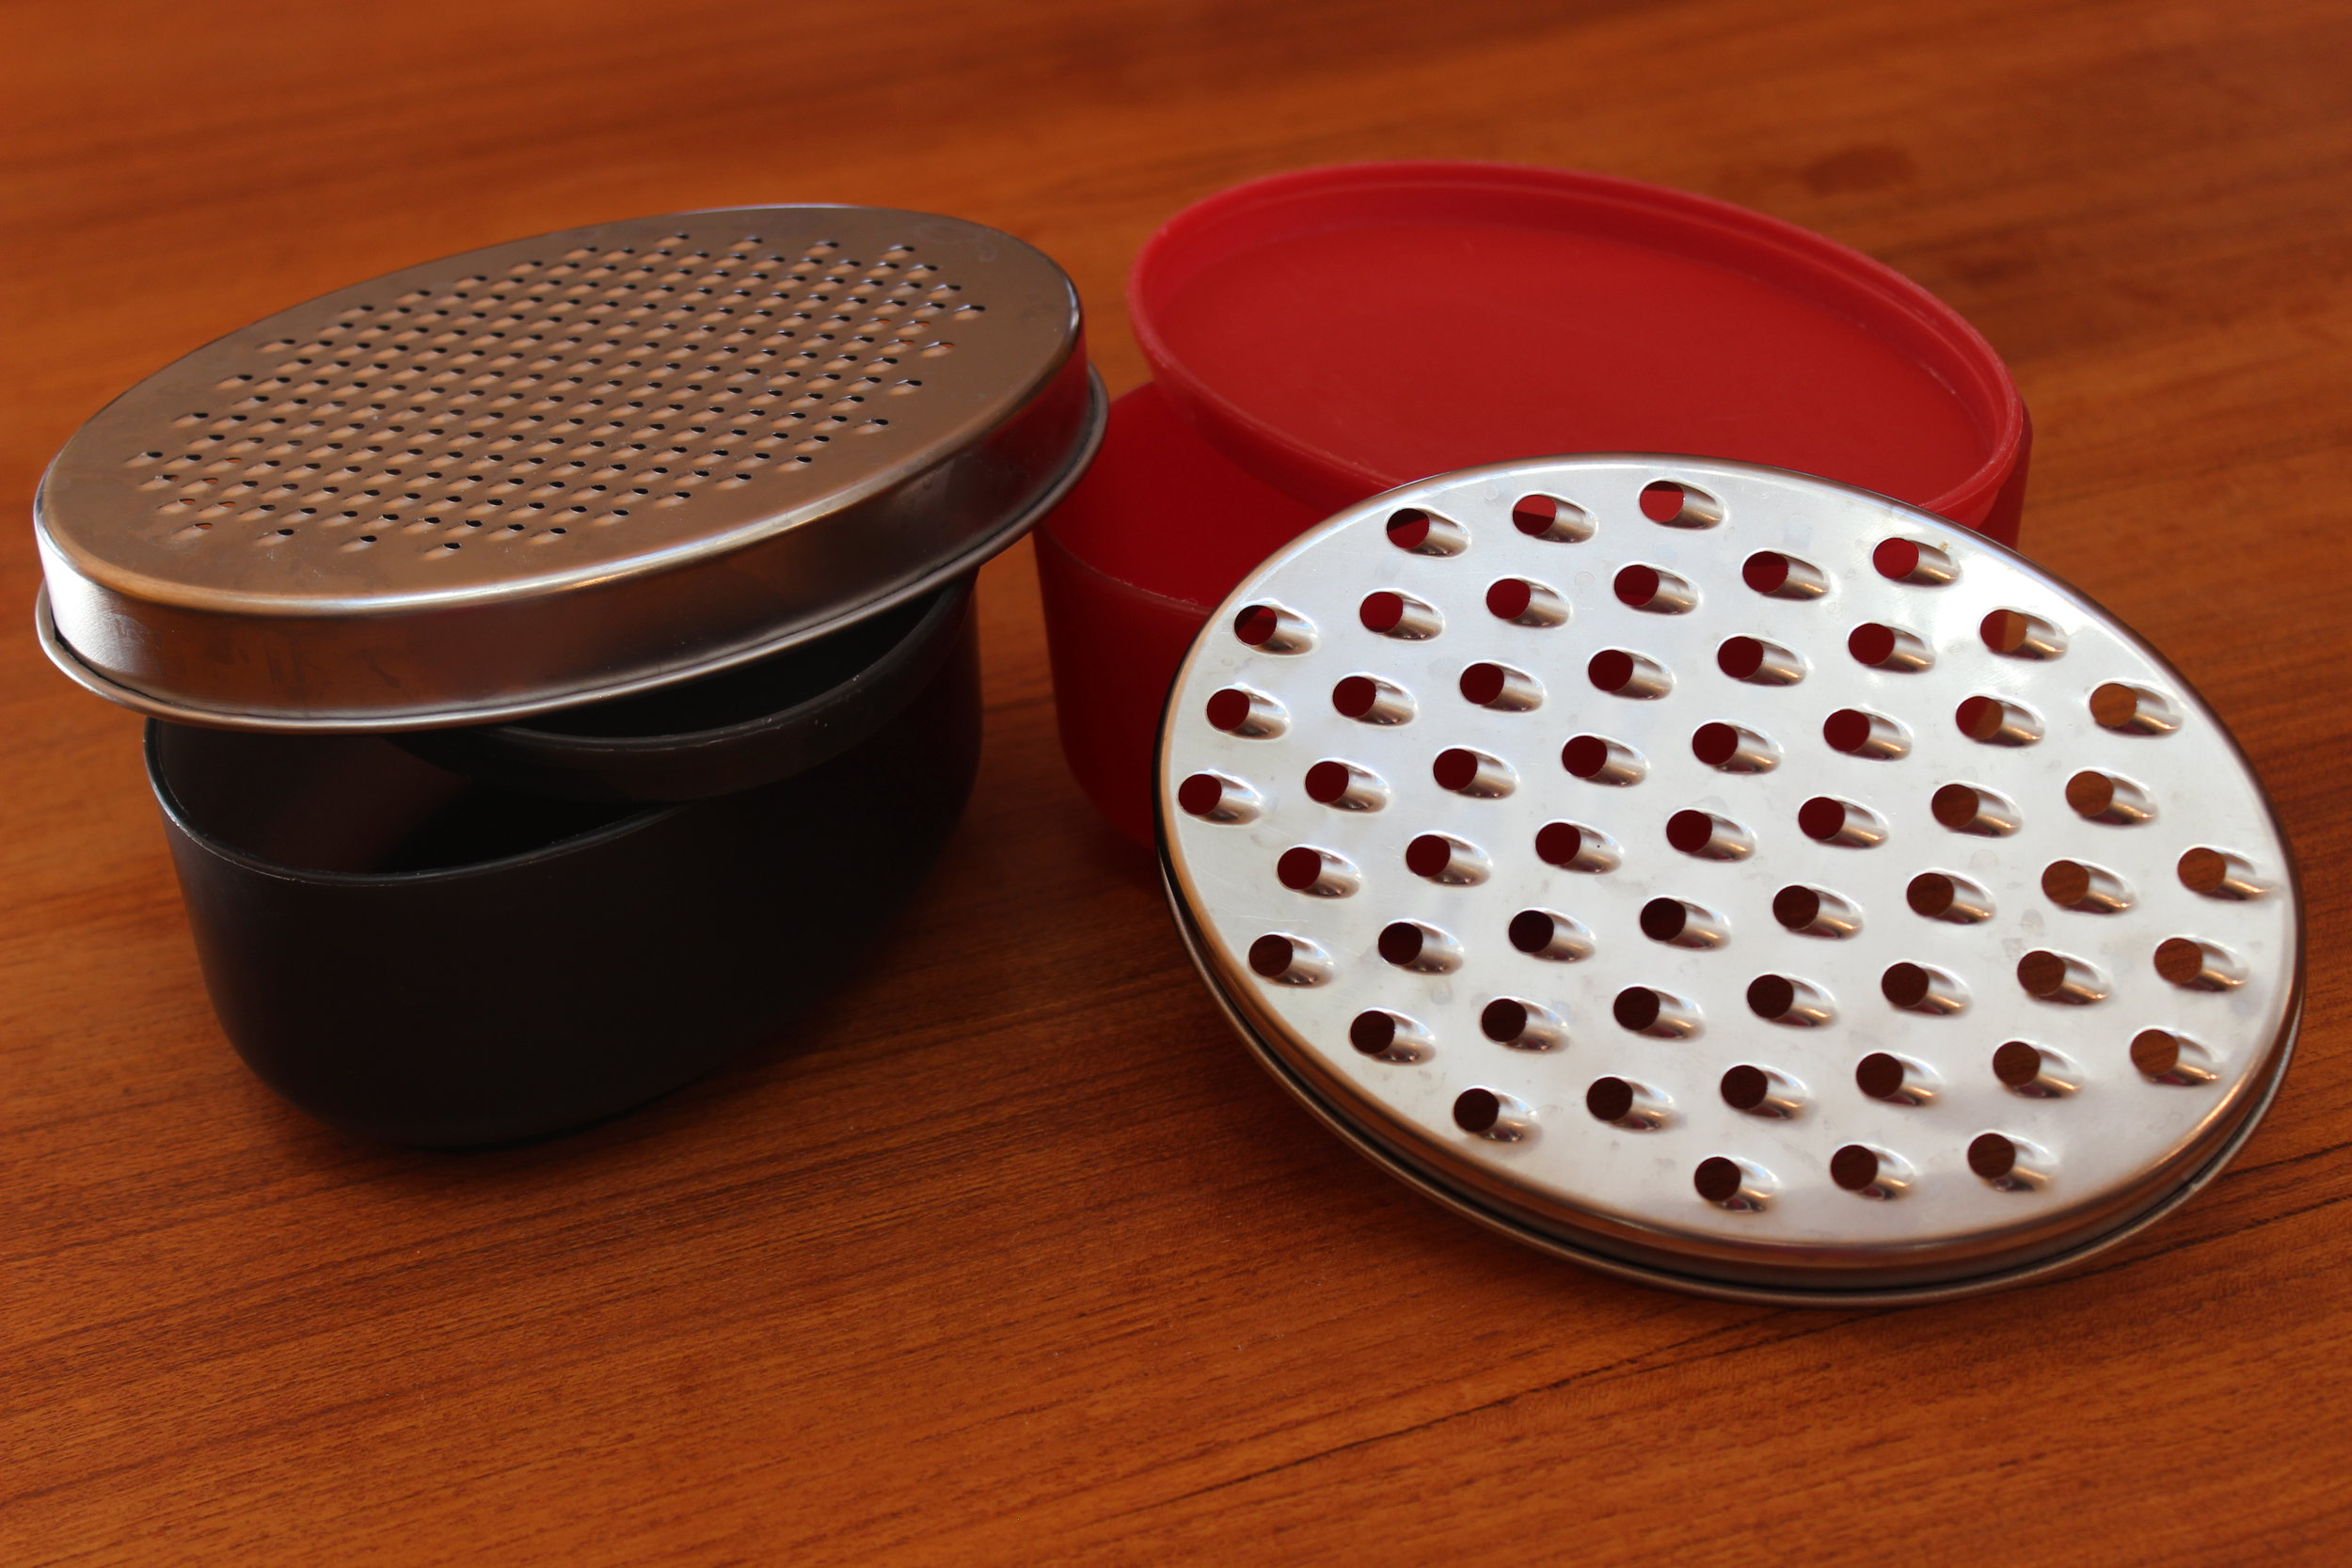 6-25-13 cheese graters.JPG